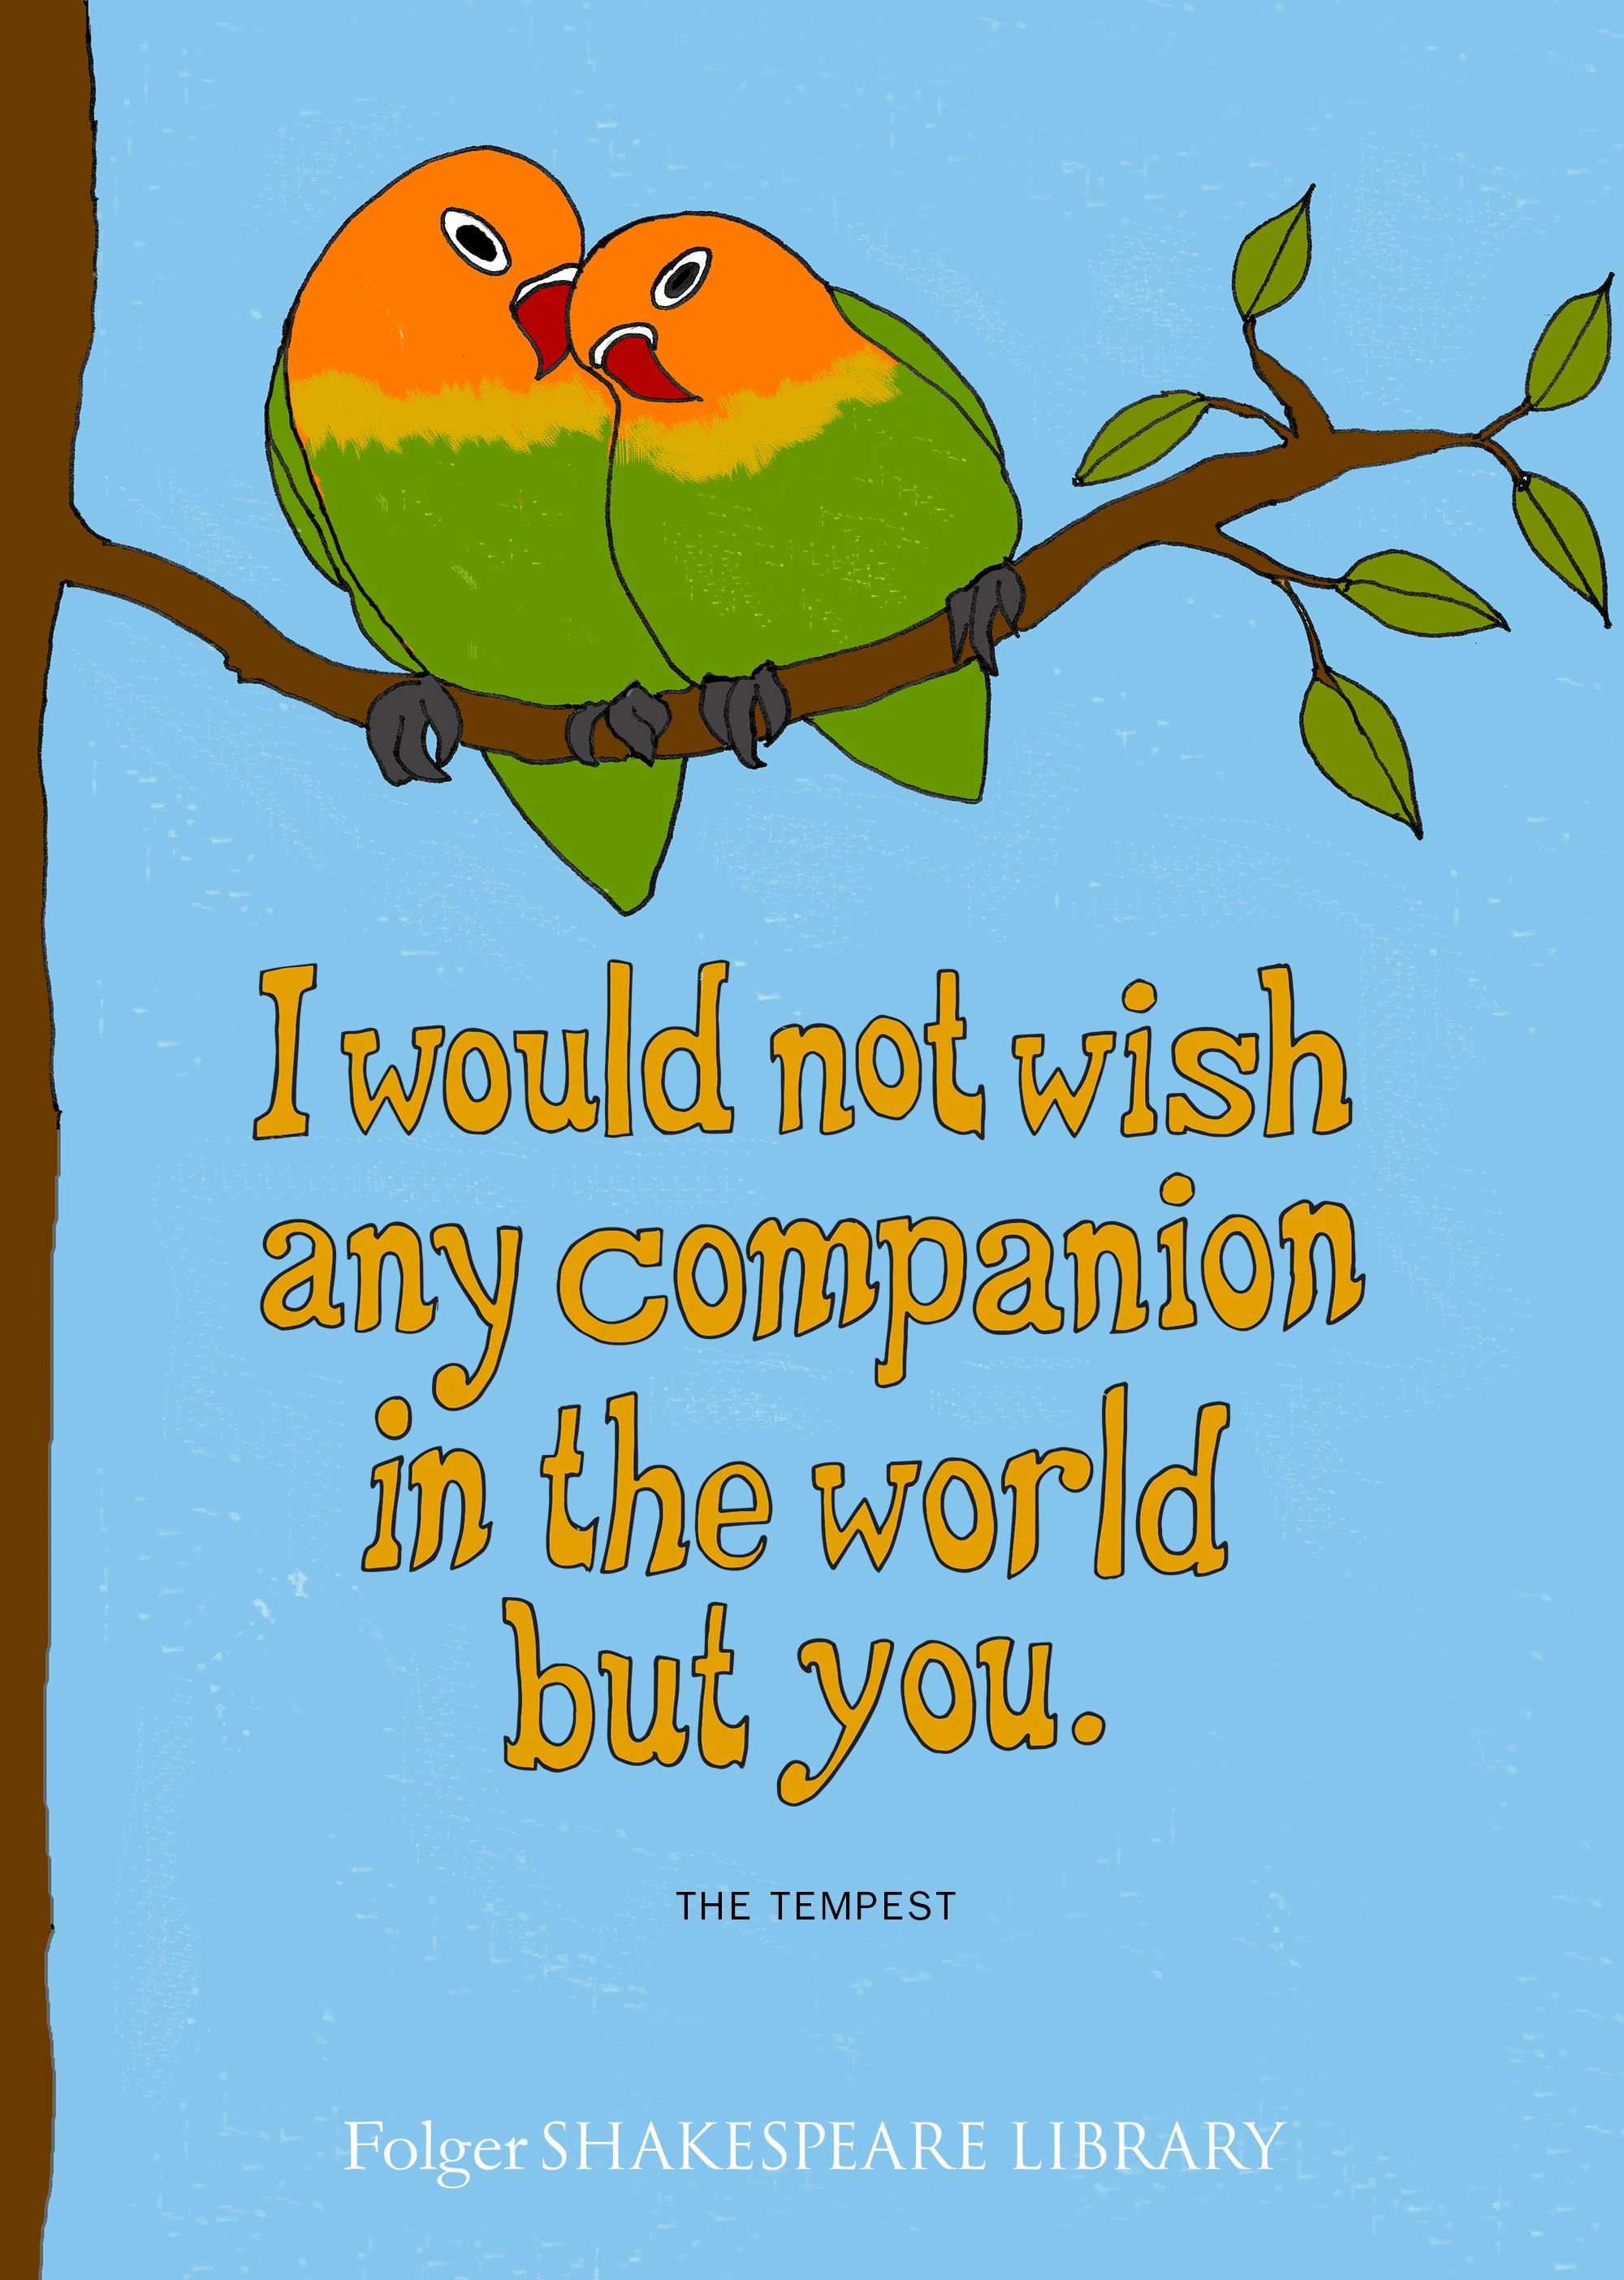 shakespeare quote i would not wish any companion in the world but